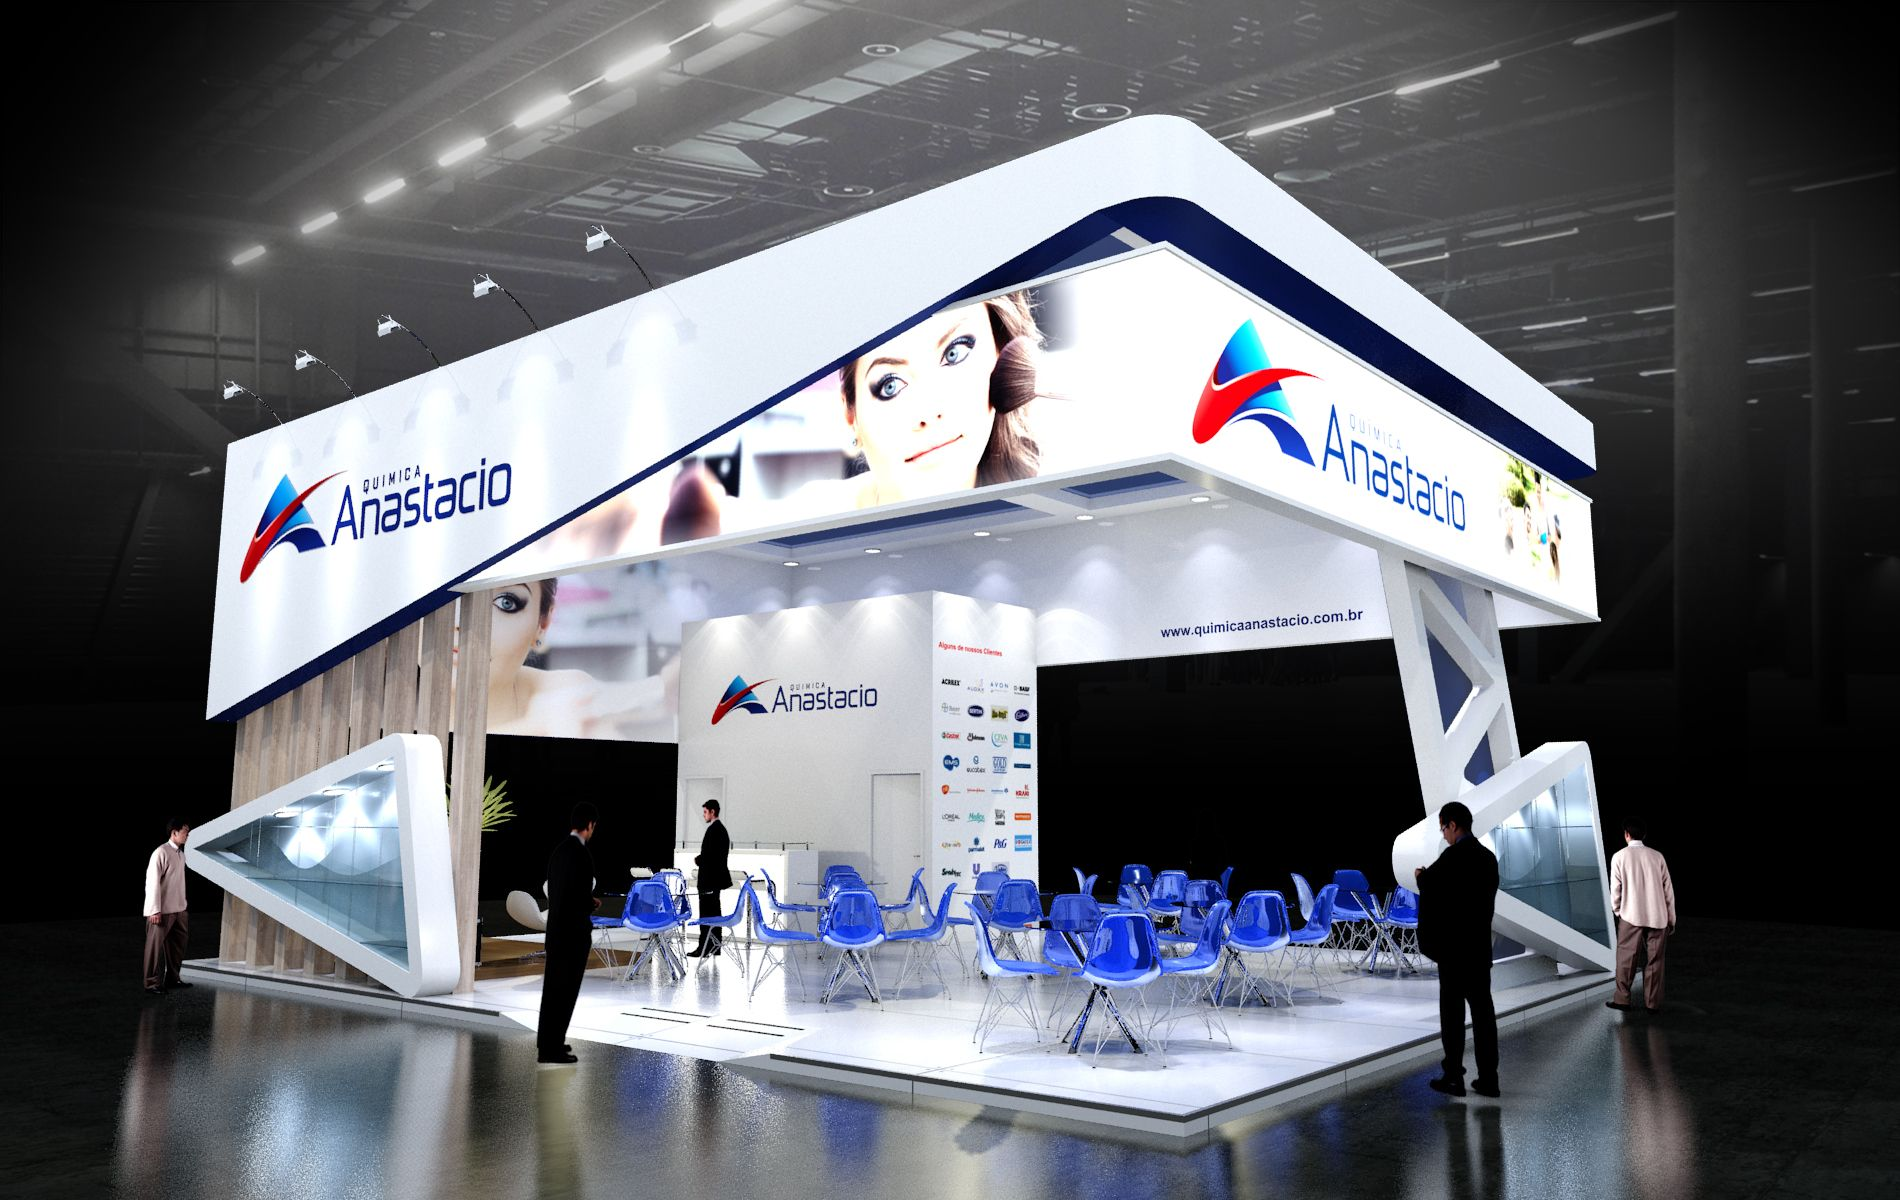 Exhibition Stall Installation : Pin by sathaporn keawpleng on exhibitions pinterest